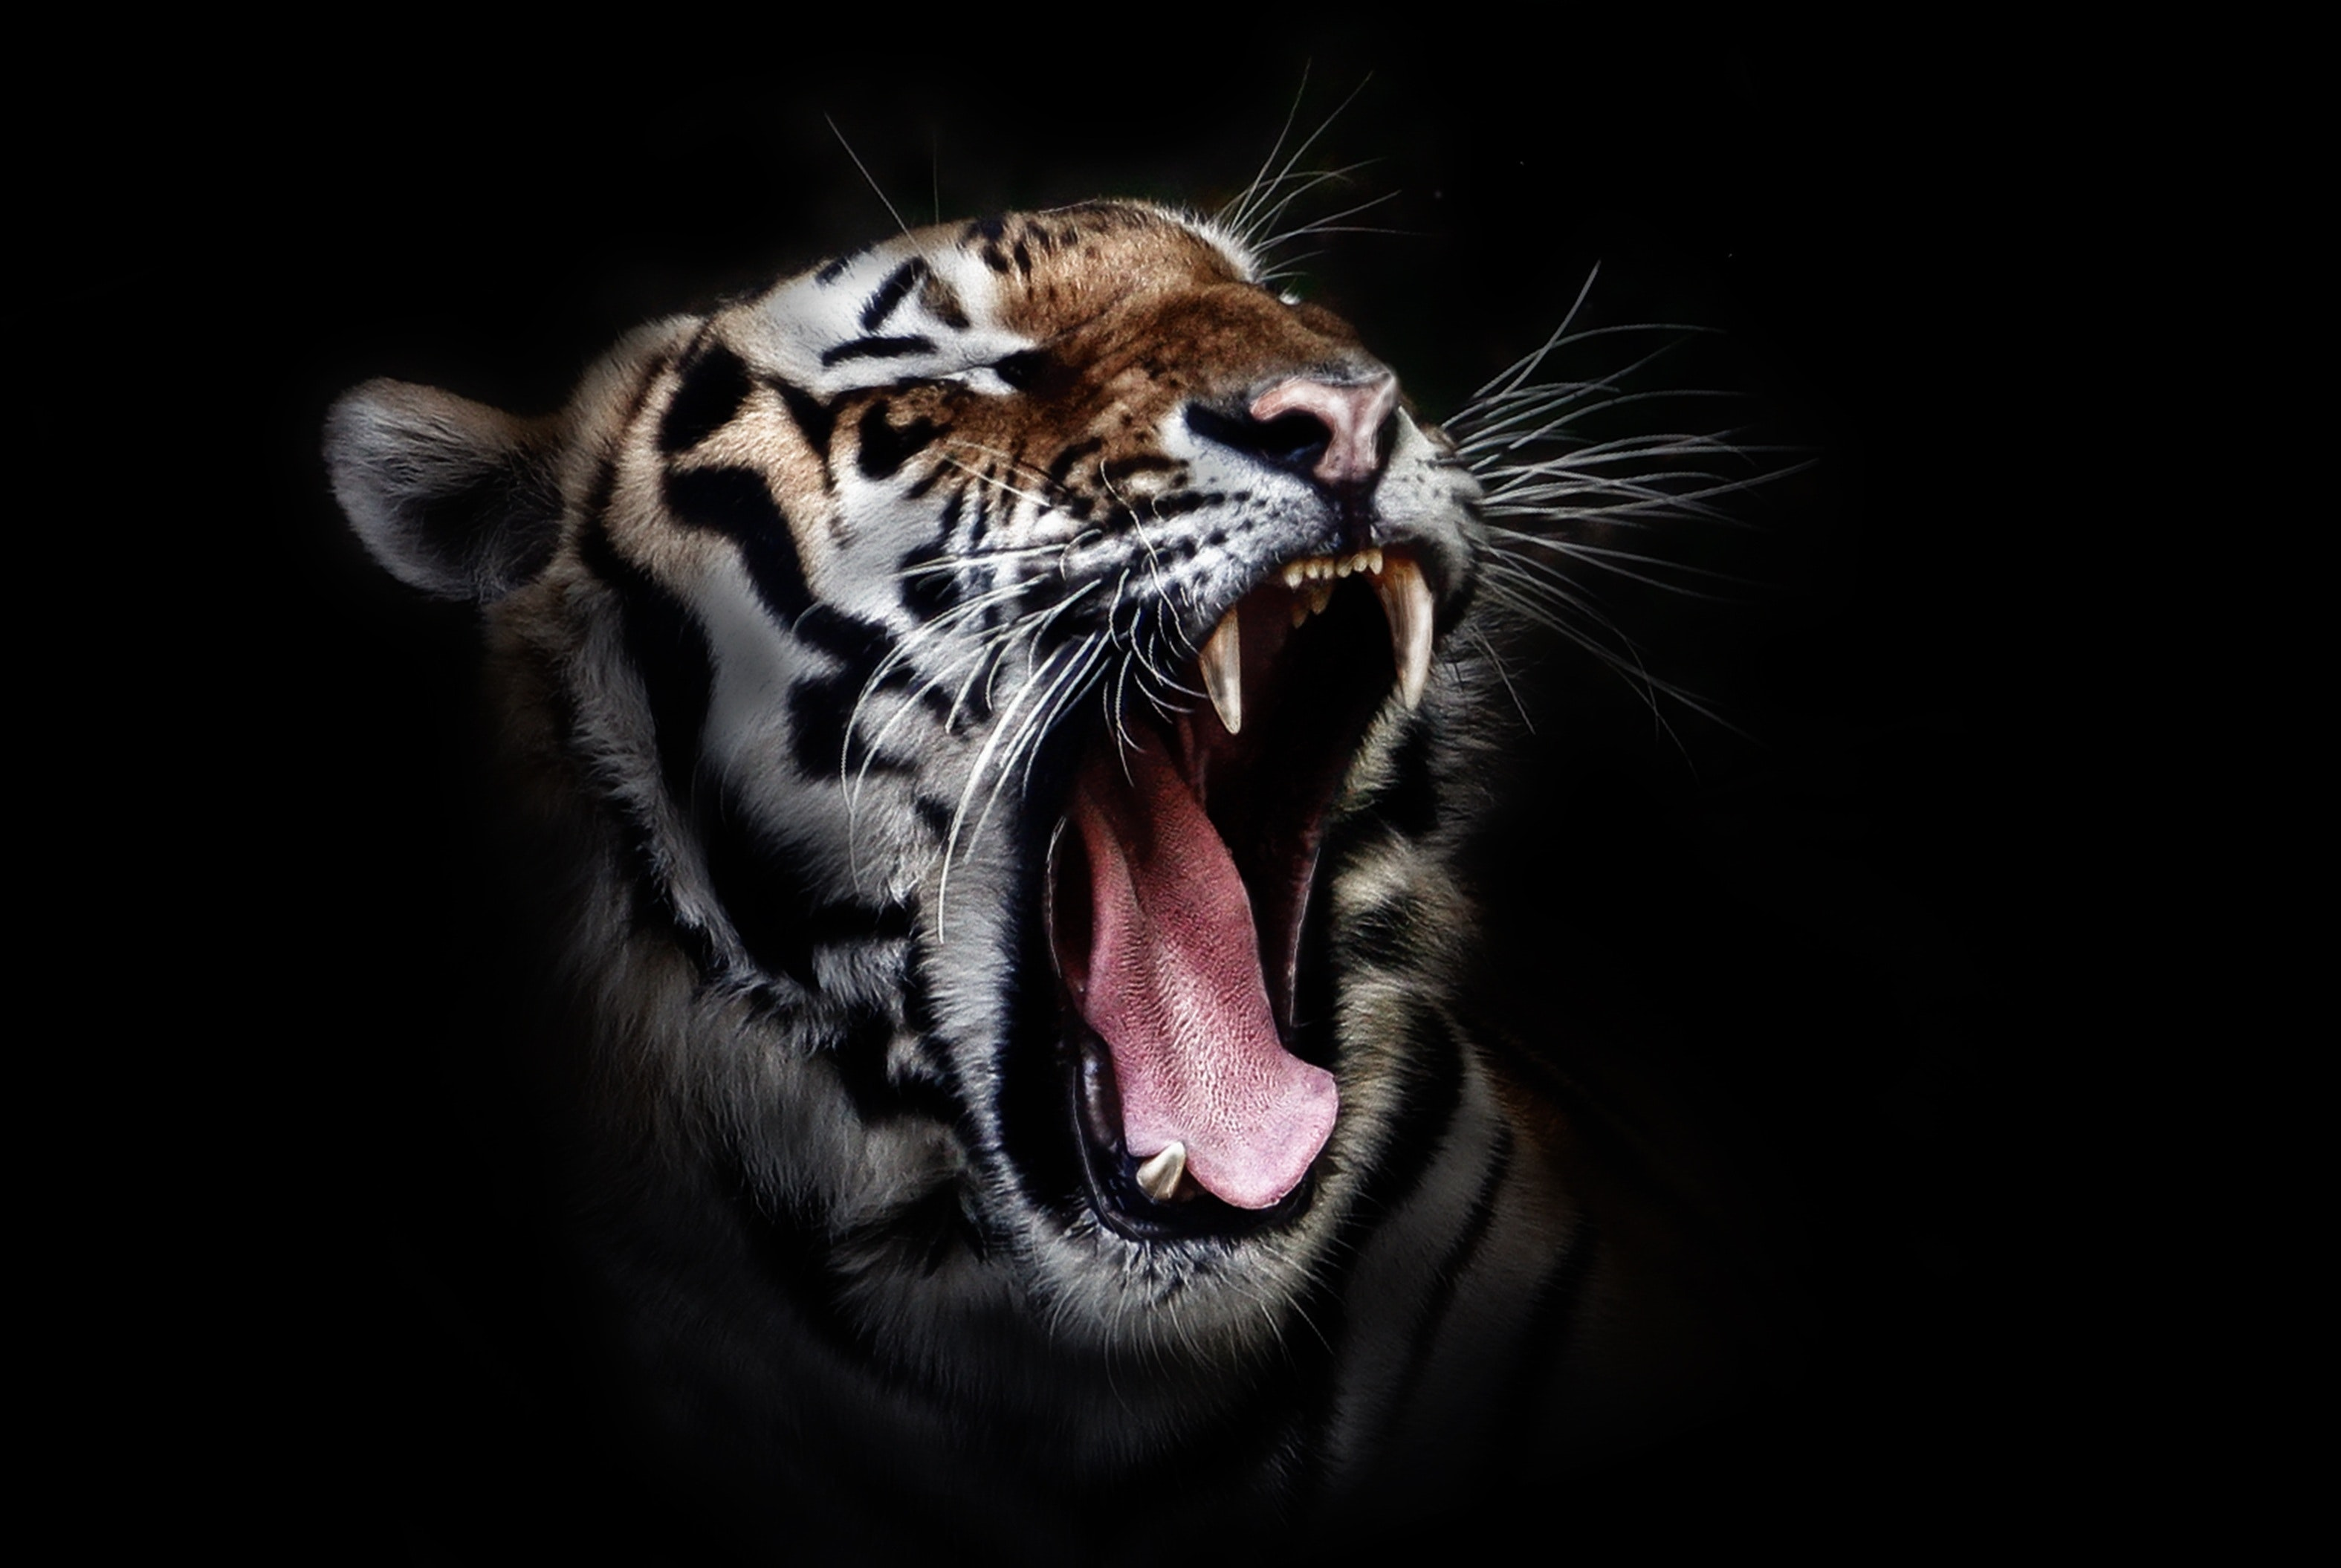 Nature Lion Big Cats Fury Angry Portrait Monochrome: Photo Of A Tiger Roaring · Free Stock Photo